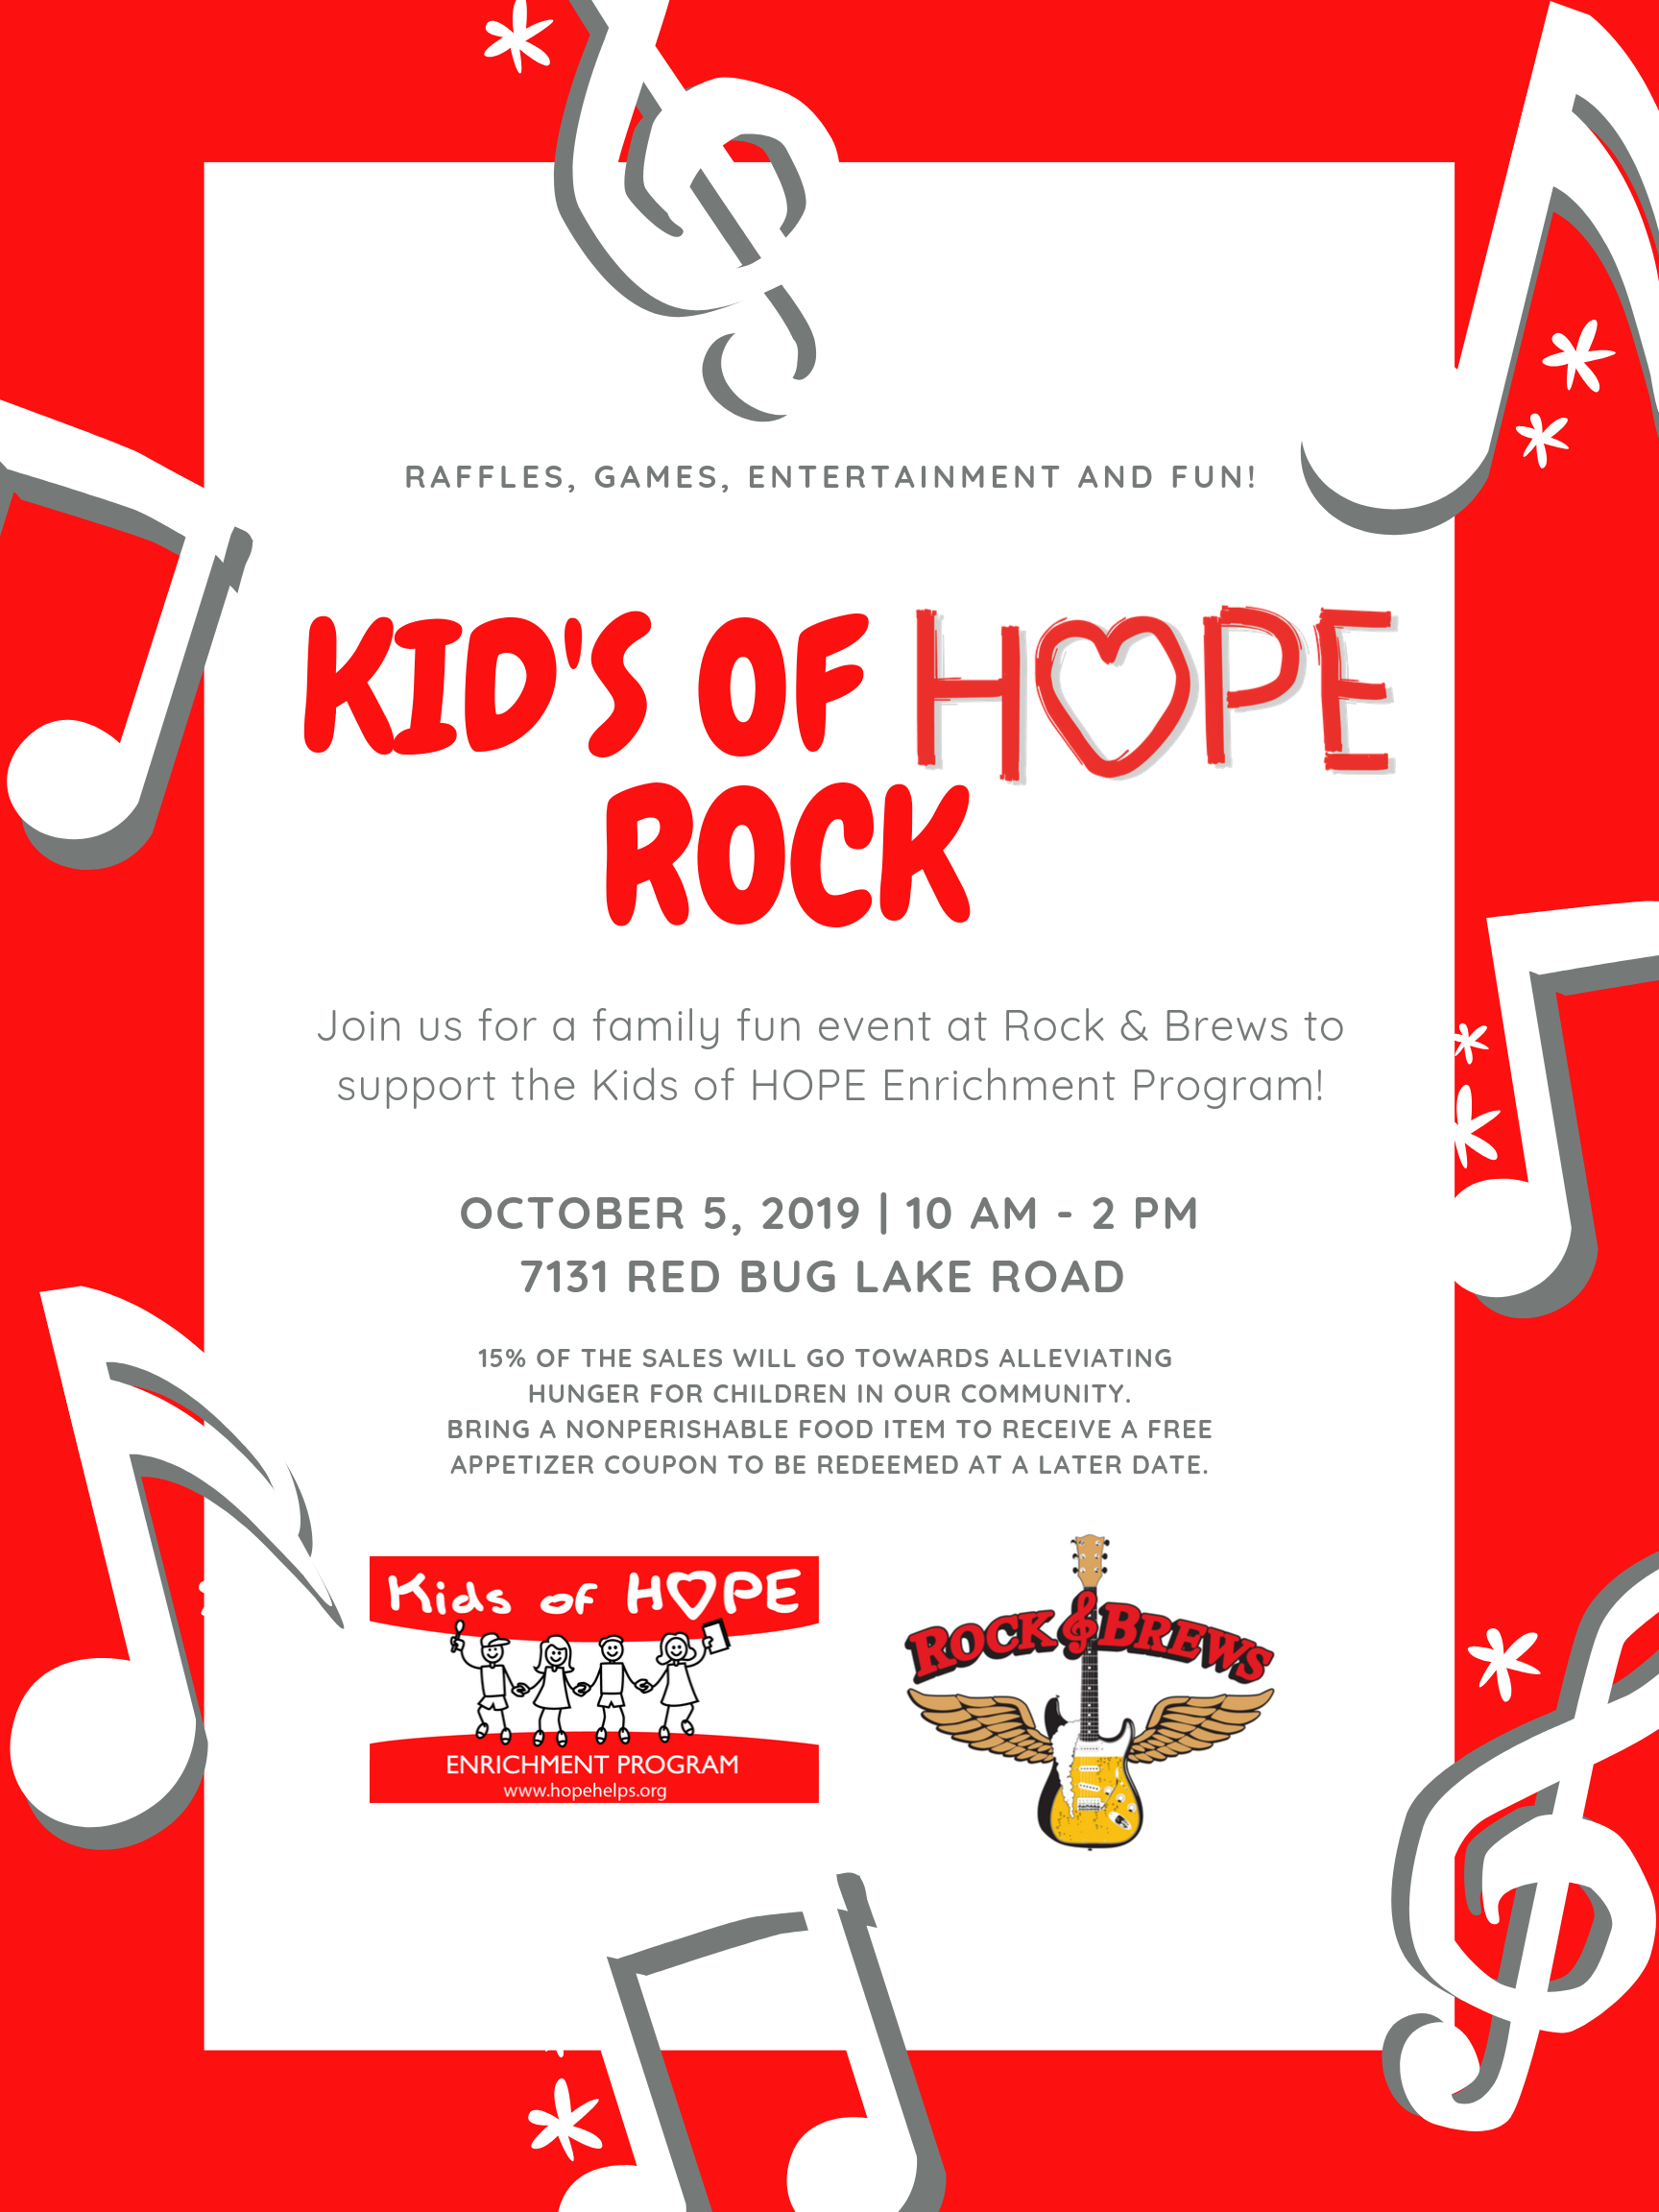 Join us at Rock & Brews at the Kids of HOPE Rock Event!